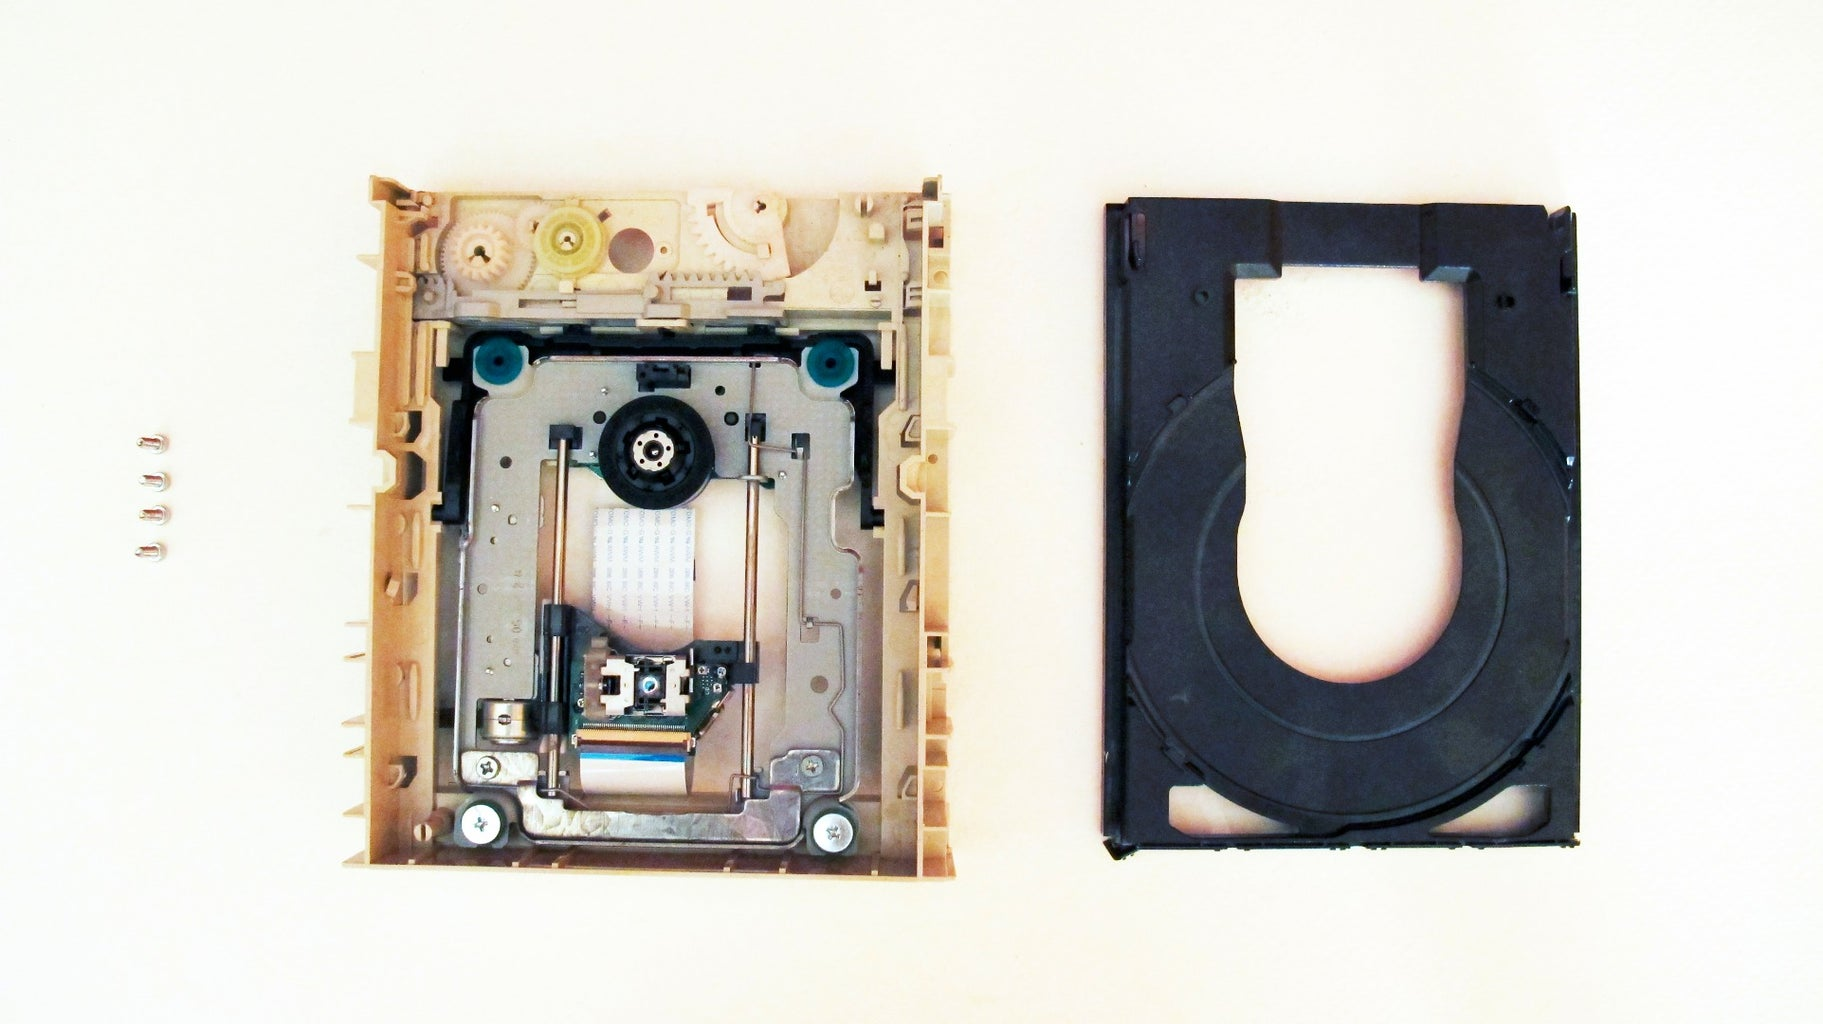 Isolate the Stepper Mechanism From the CD Drive.